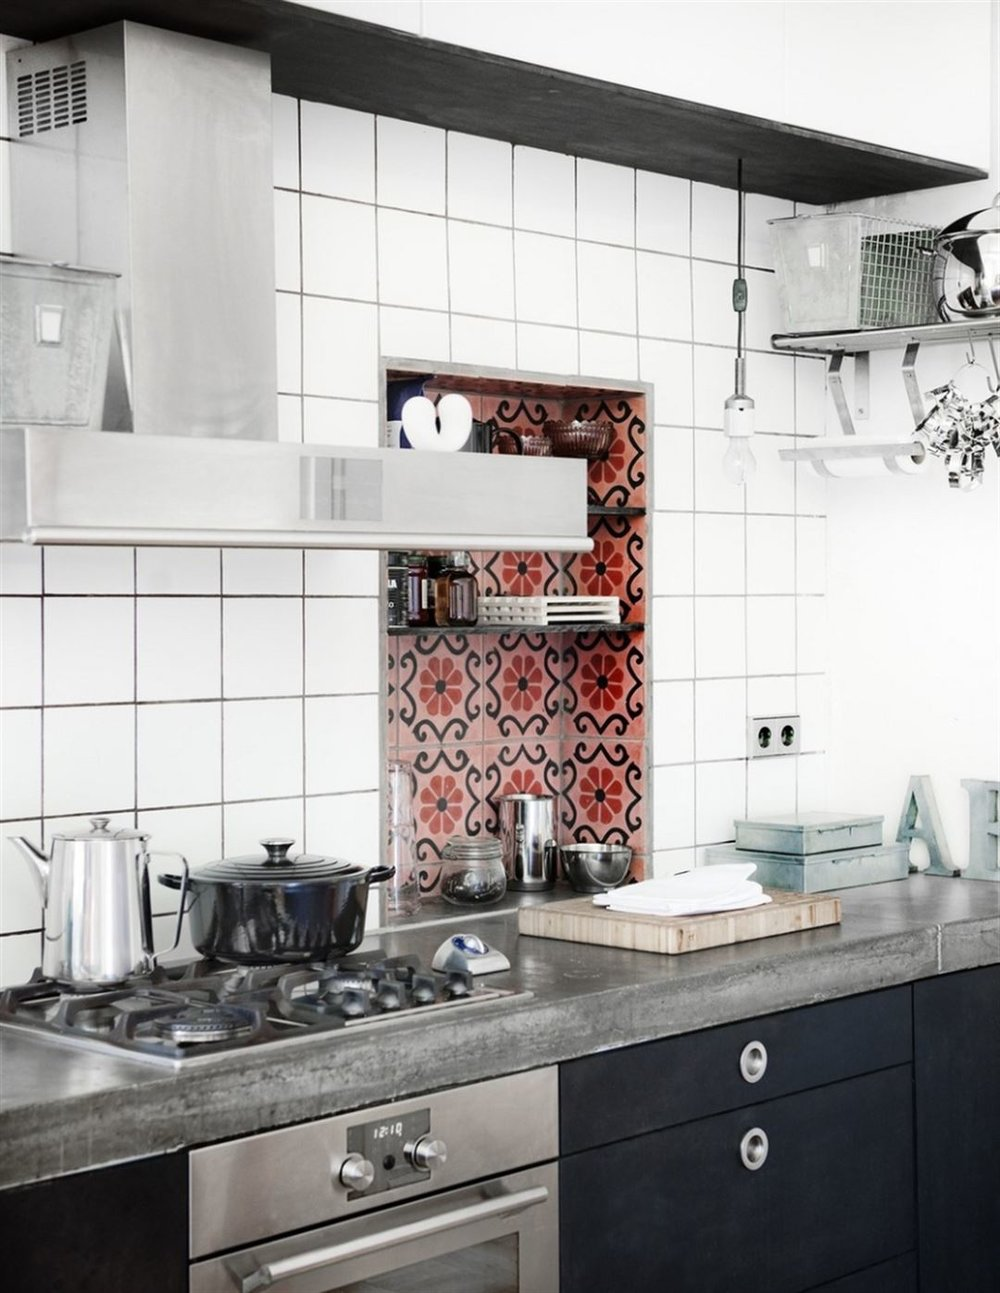 Encaustic cement tiled niche in this industrial-scandi kitchen. Image credit:  Leva & Bo